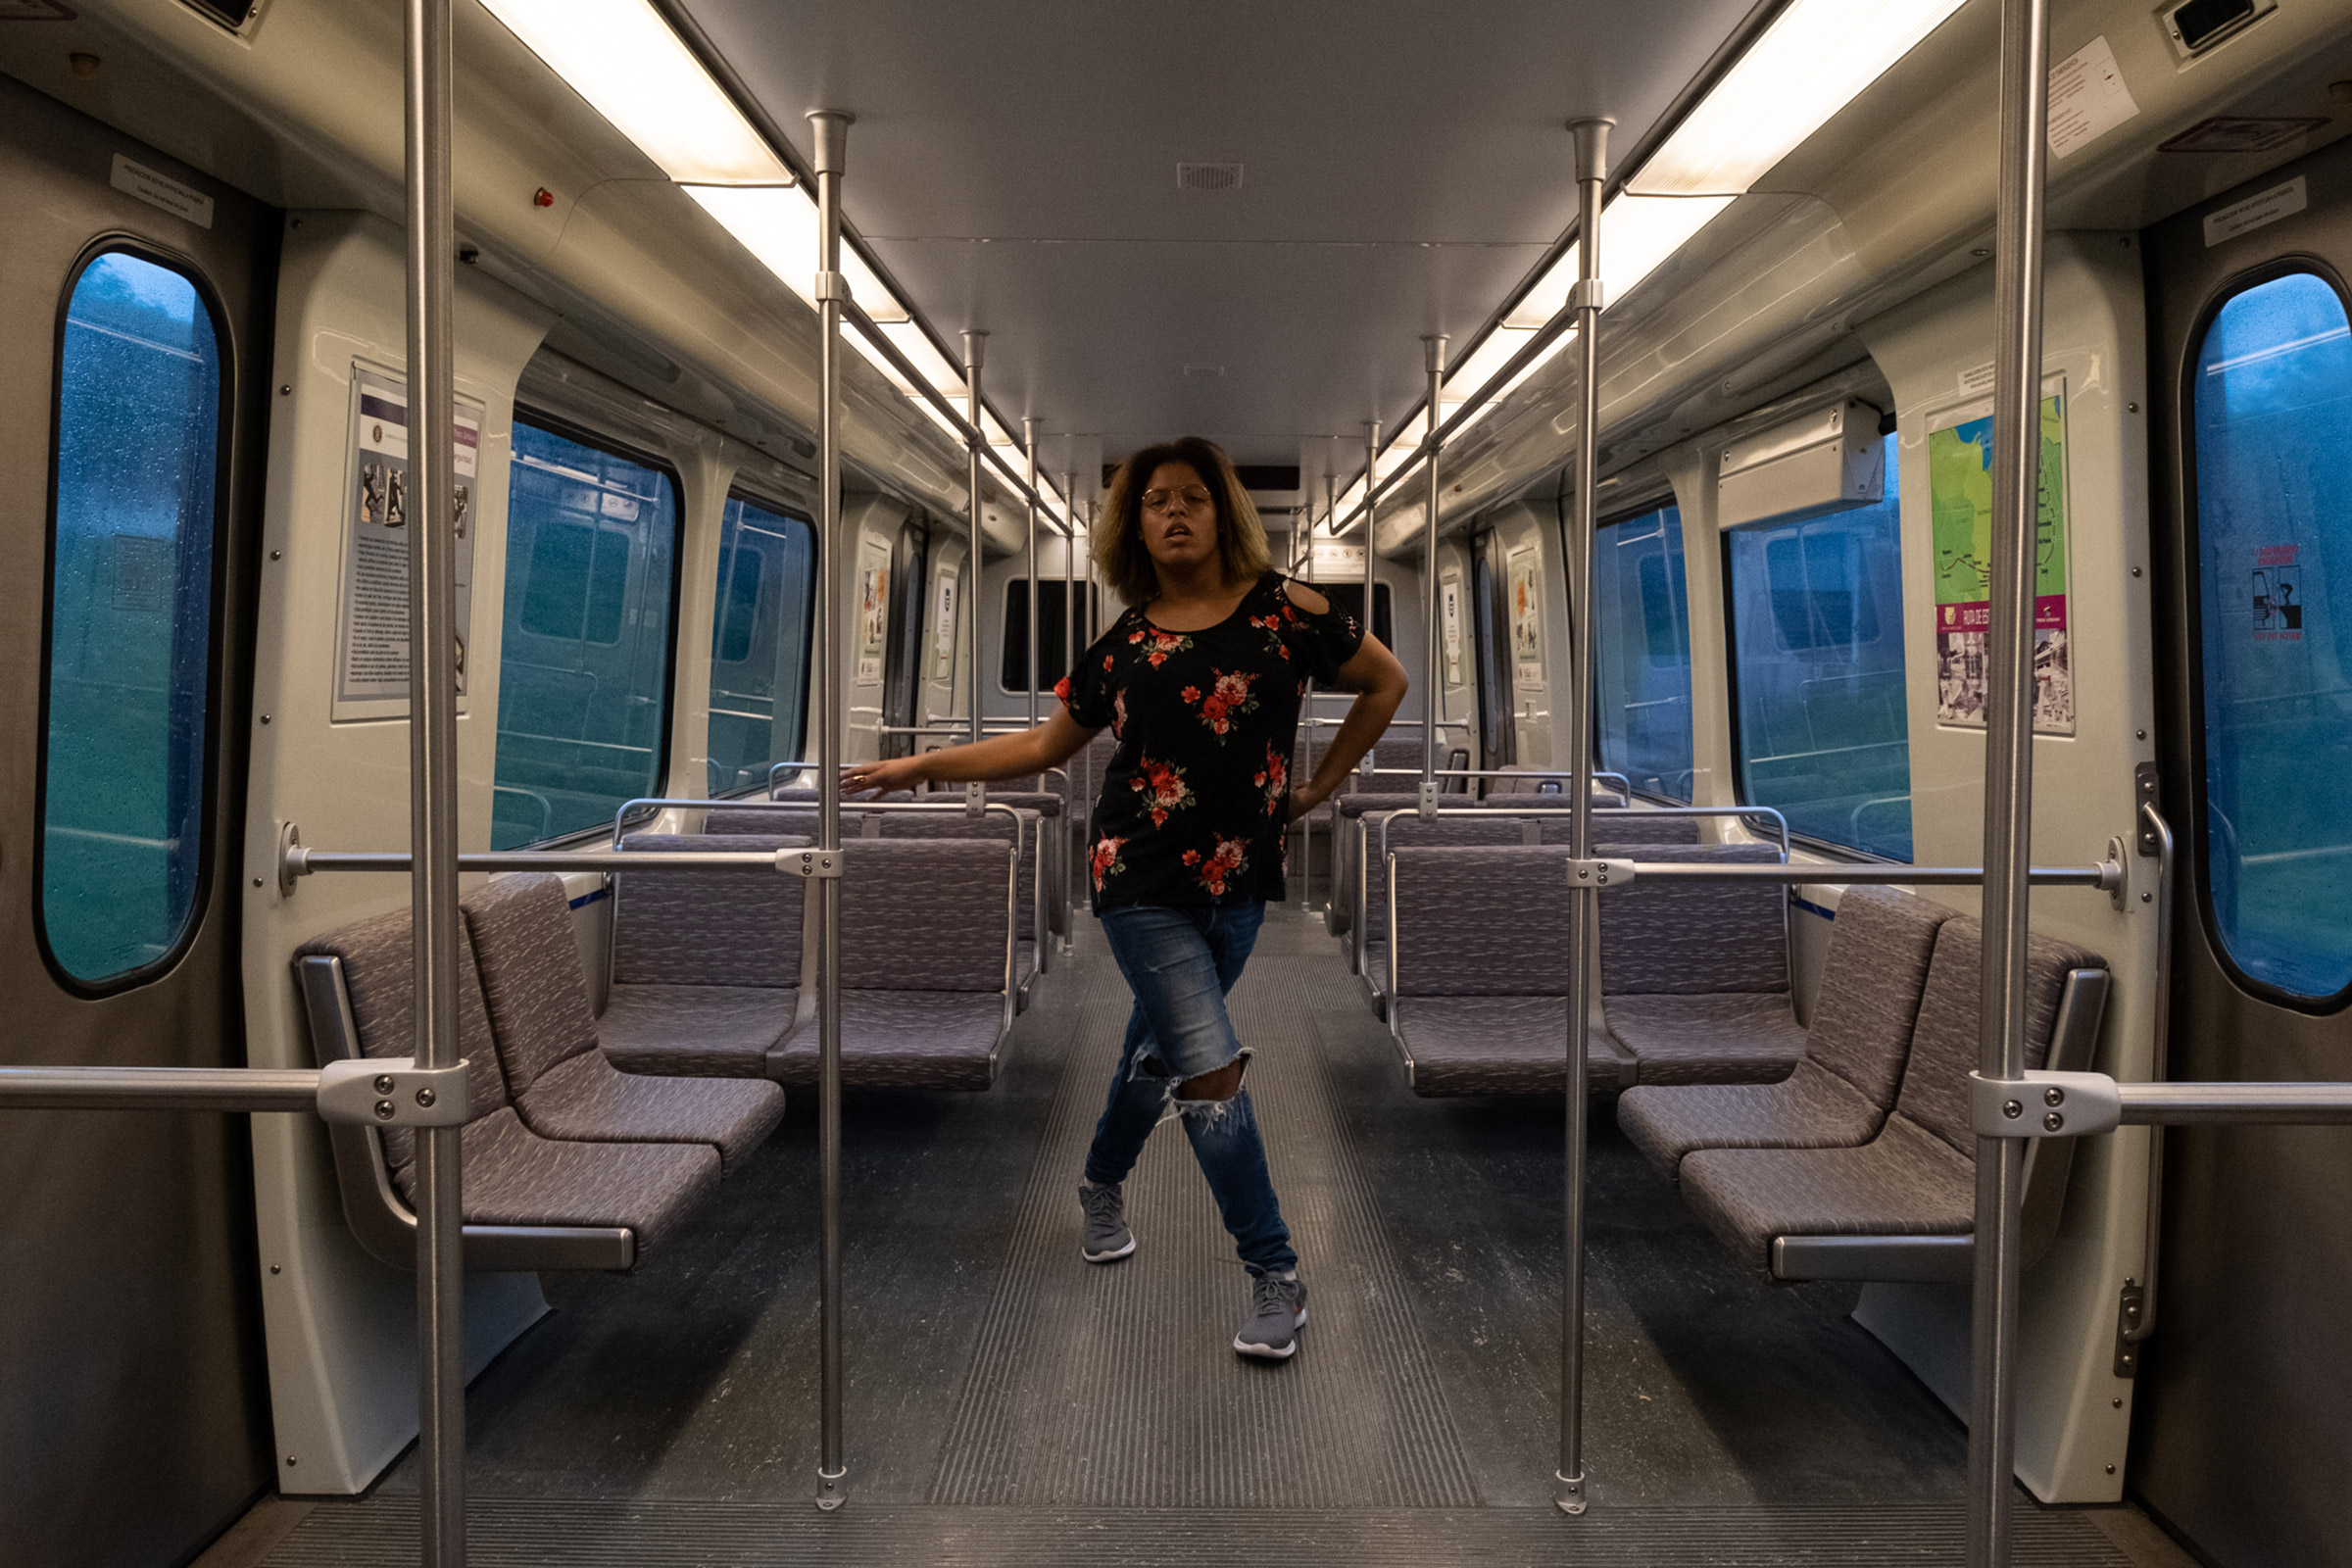 LeQueen, 21, vogues on the train she takes on a daily basis to commute to work and other places around San Juan, Puerto Rico.